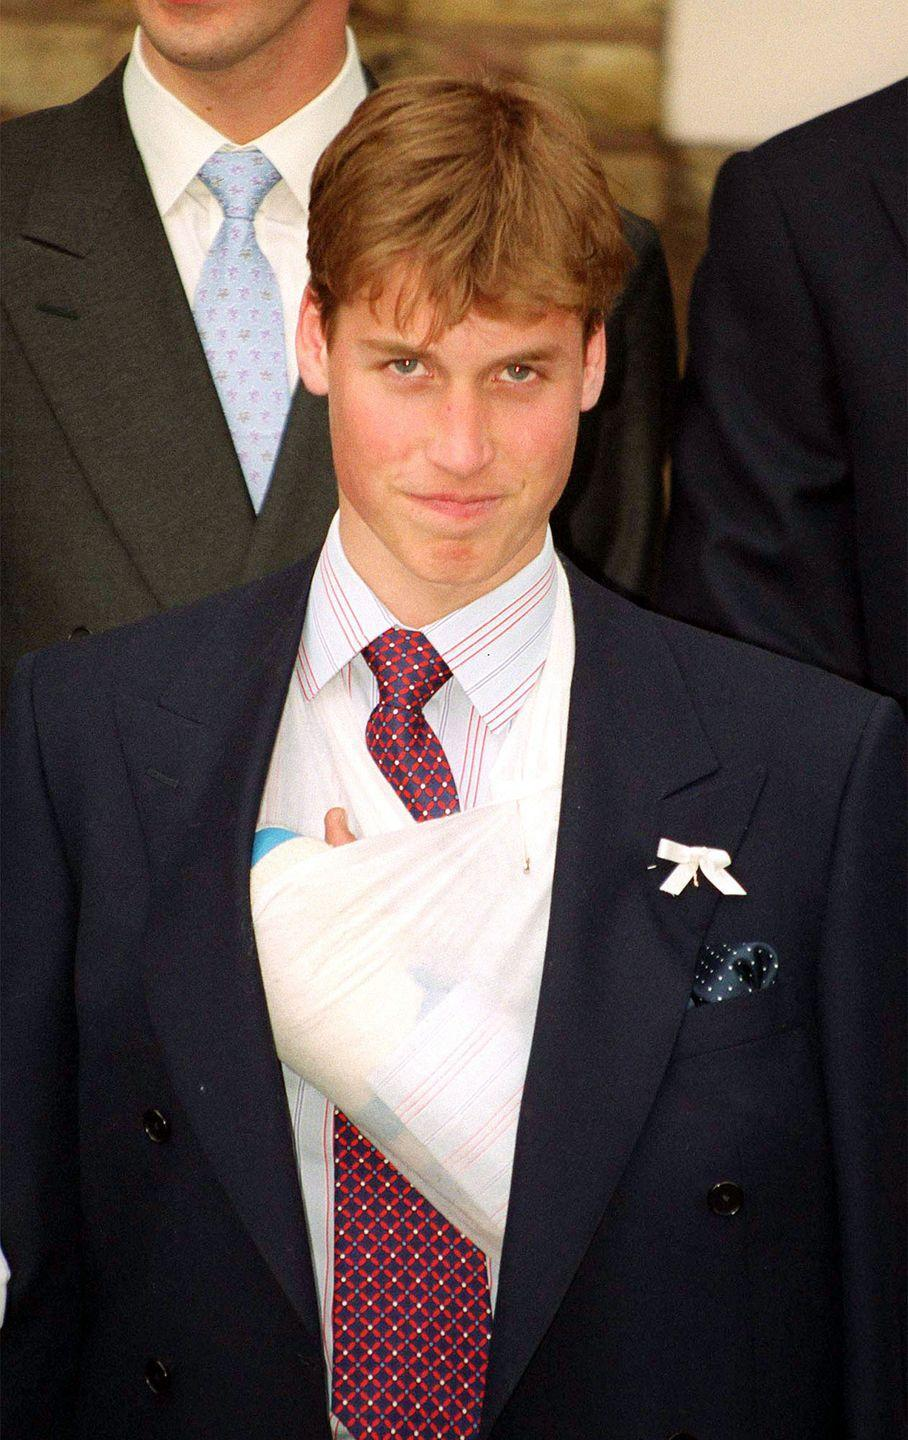 <p>Throwback to when Prince William broke his finger and got the most extra cast of all time. I feel you, man. </p>